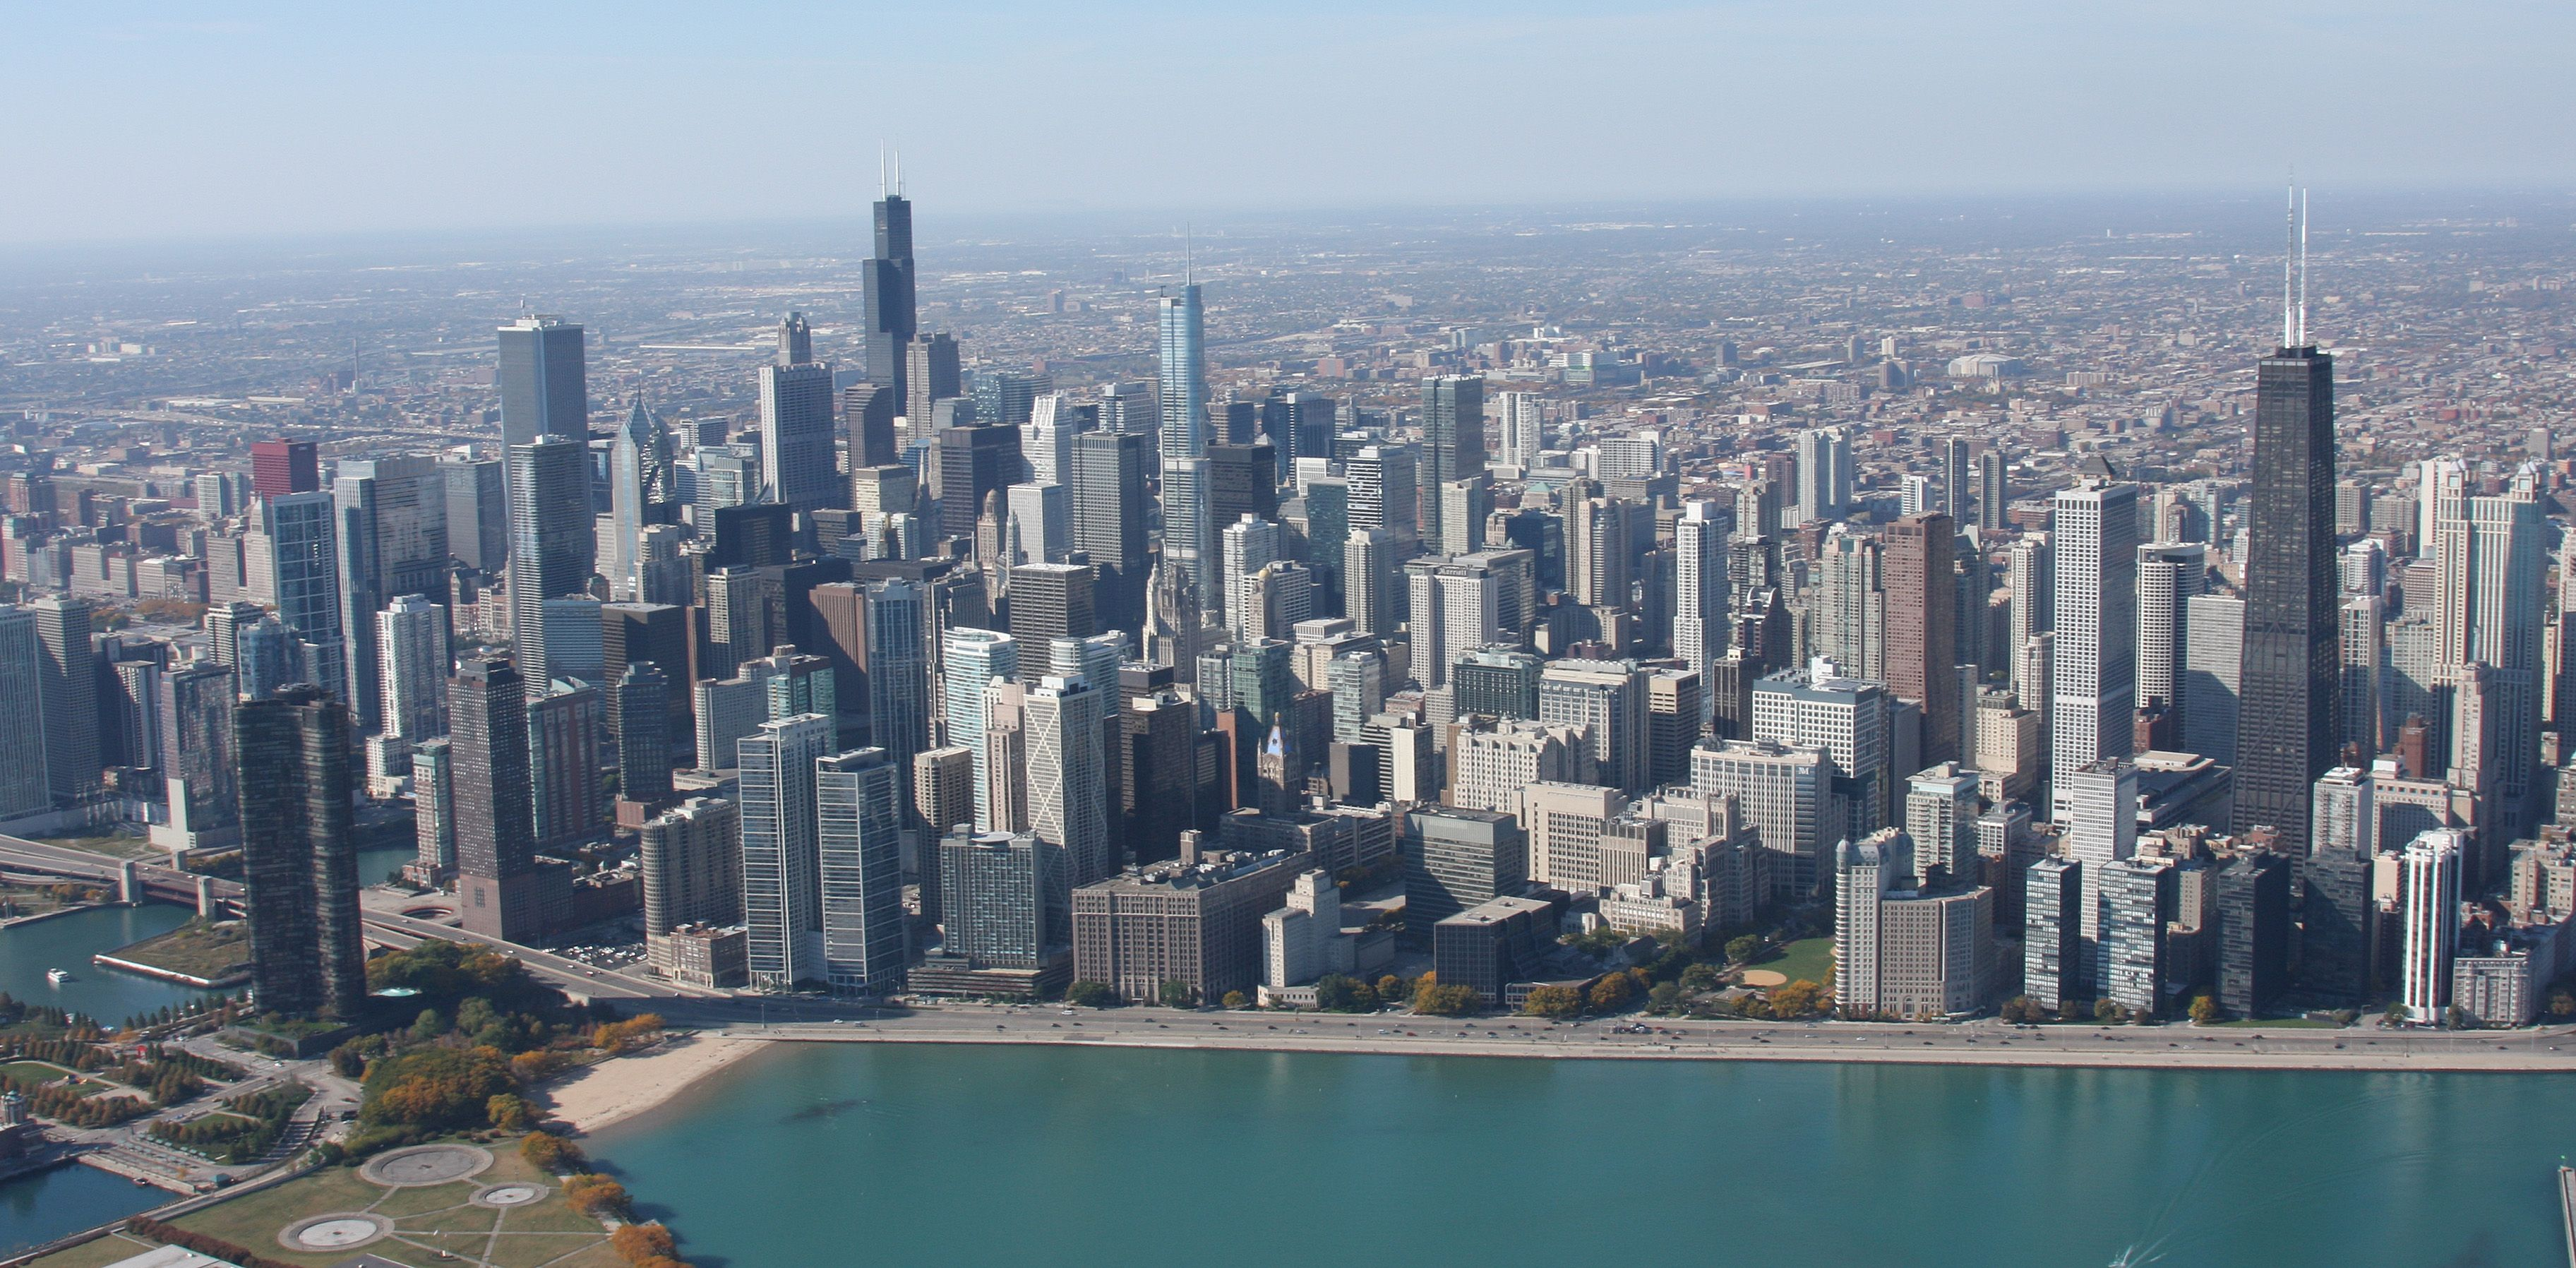 future towers of Chicago | Chicago Skyline in 2011 (Photo ...